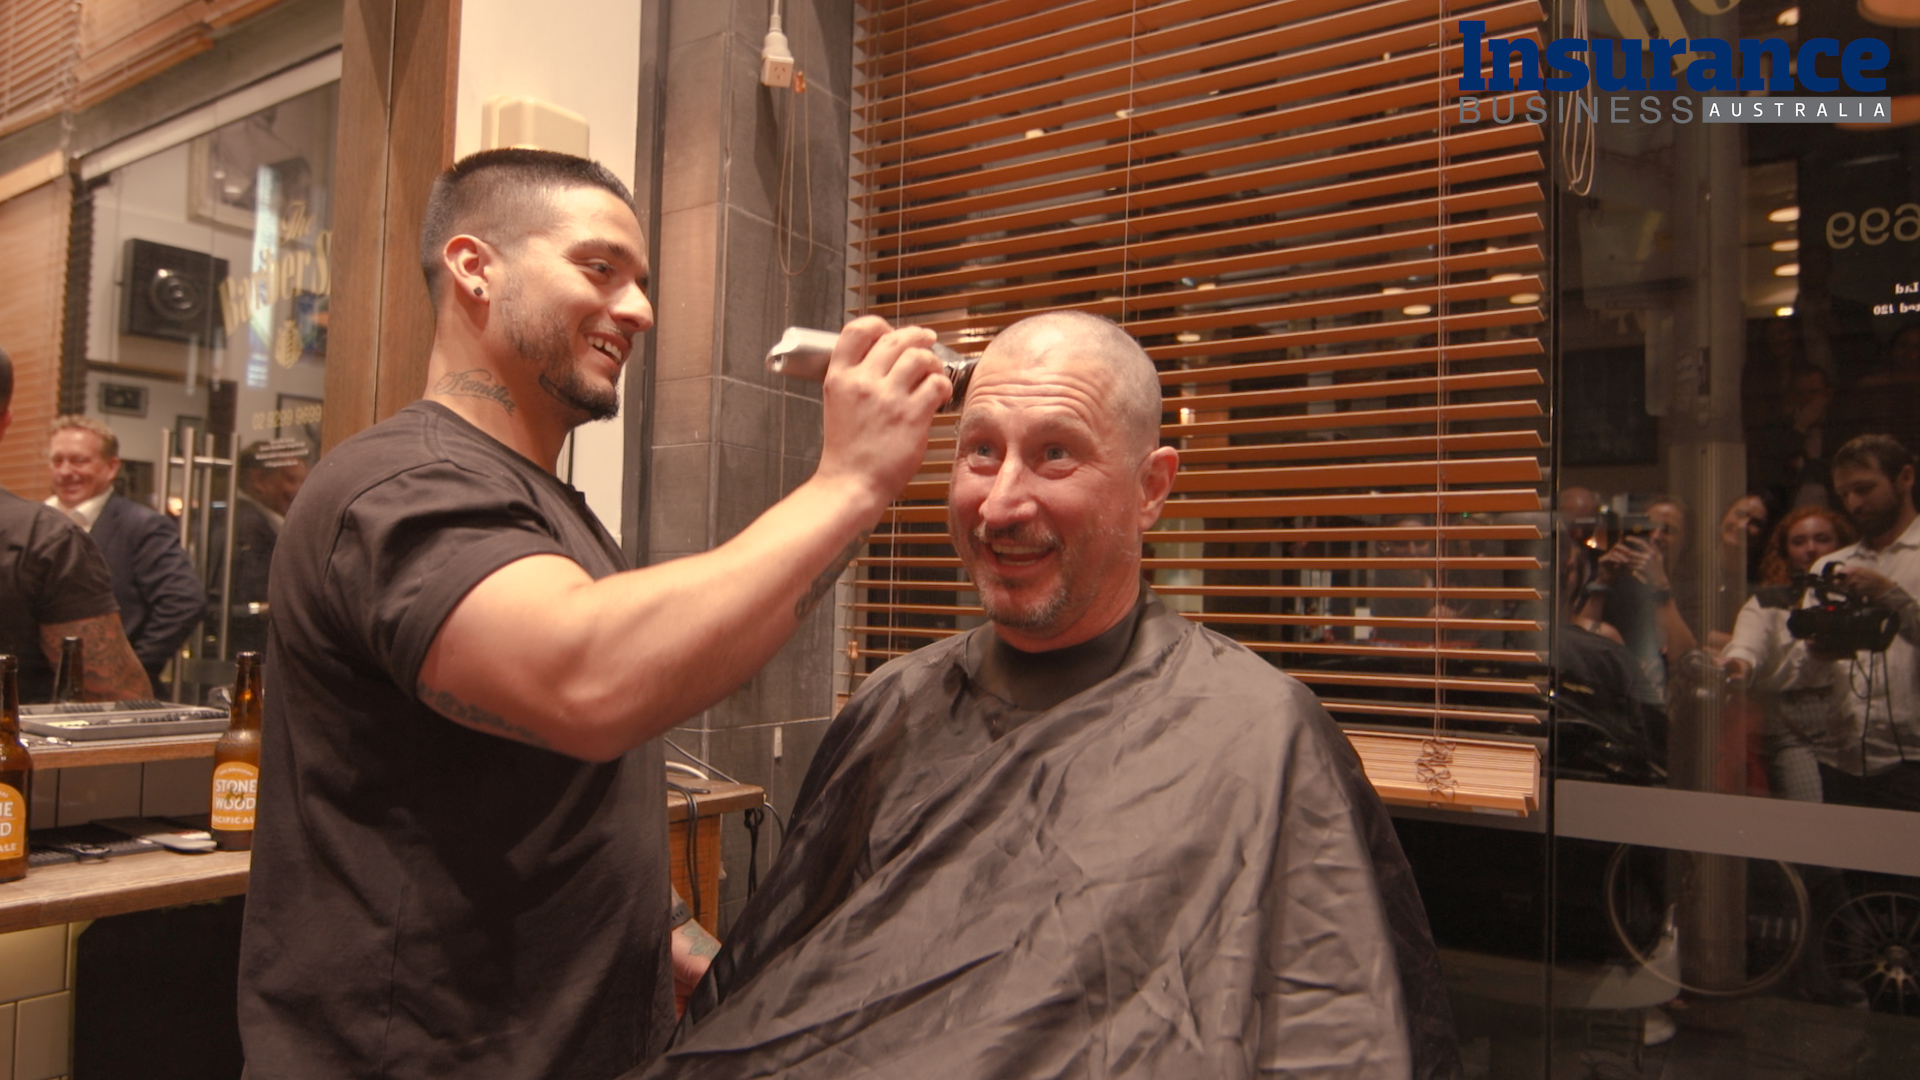 CEO raises $70K with charity head shave